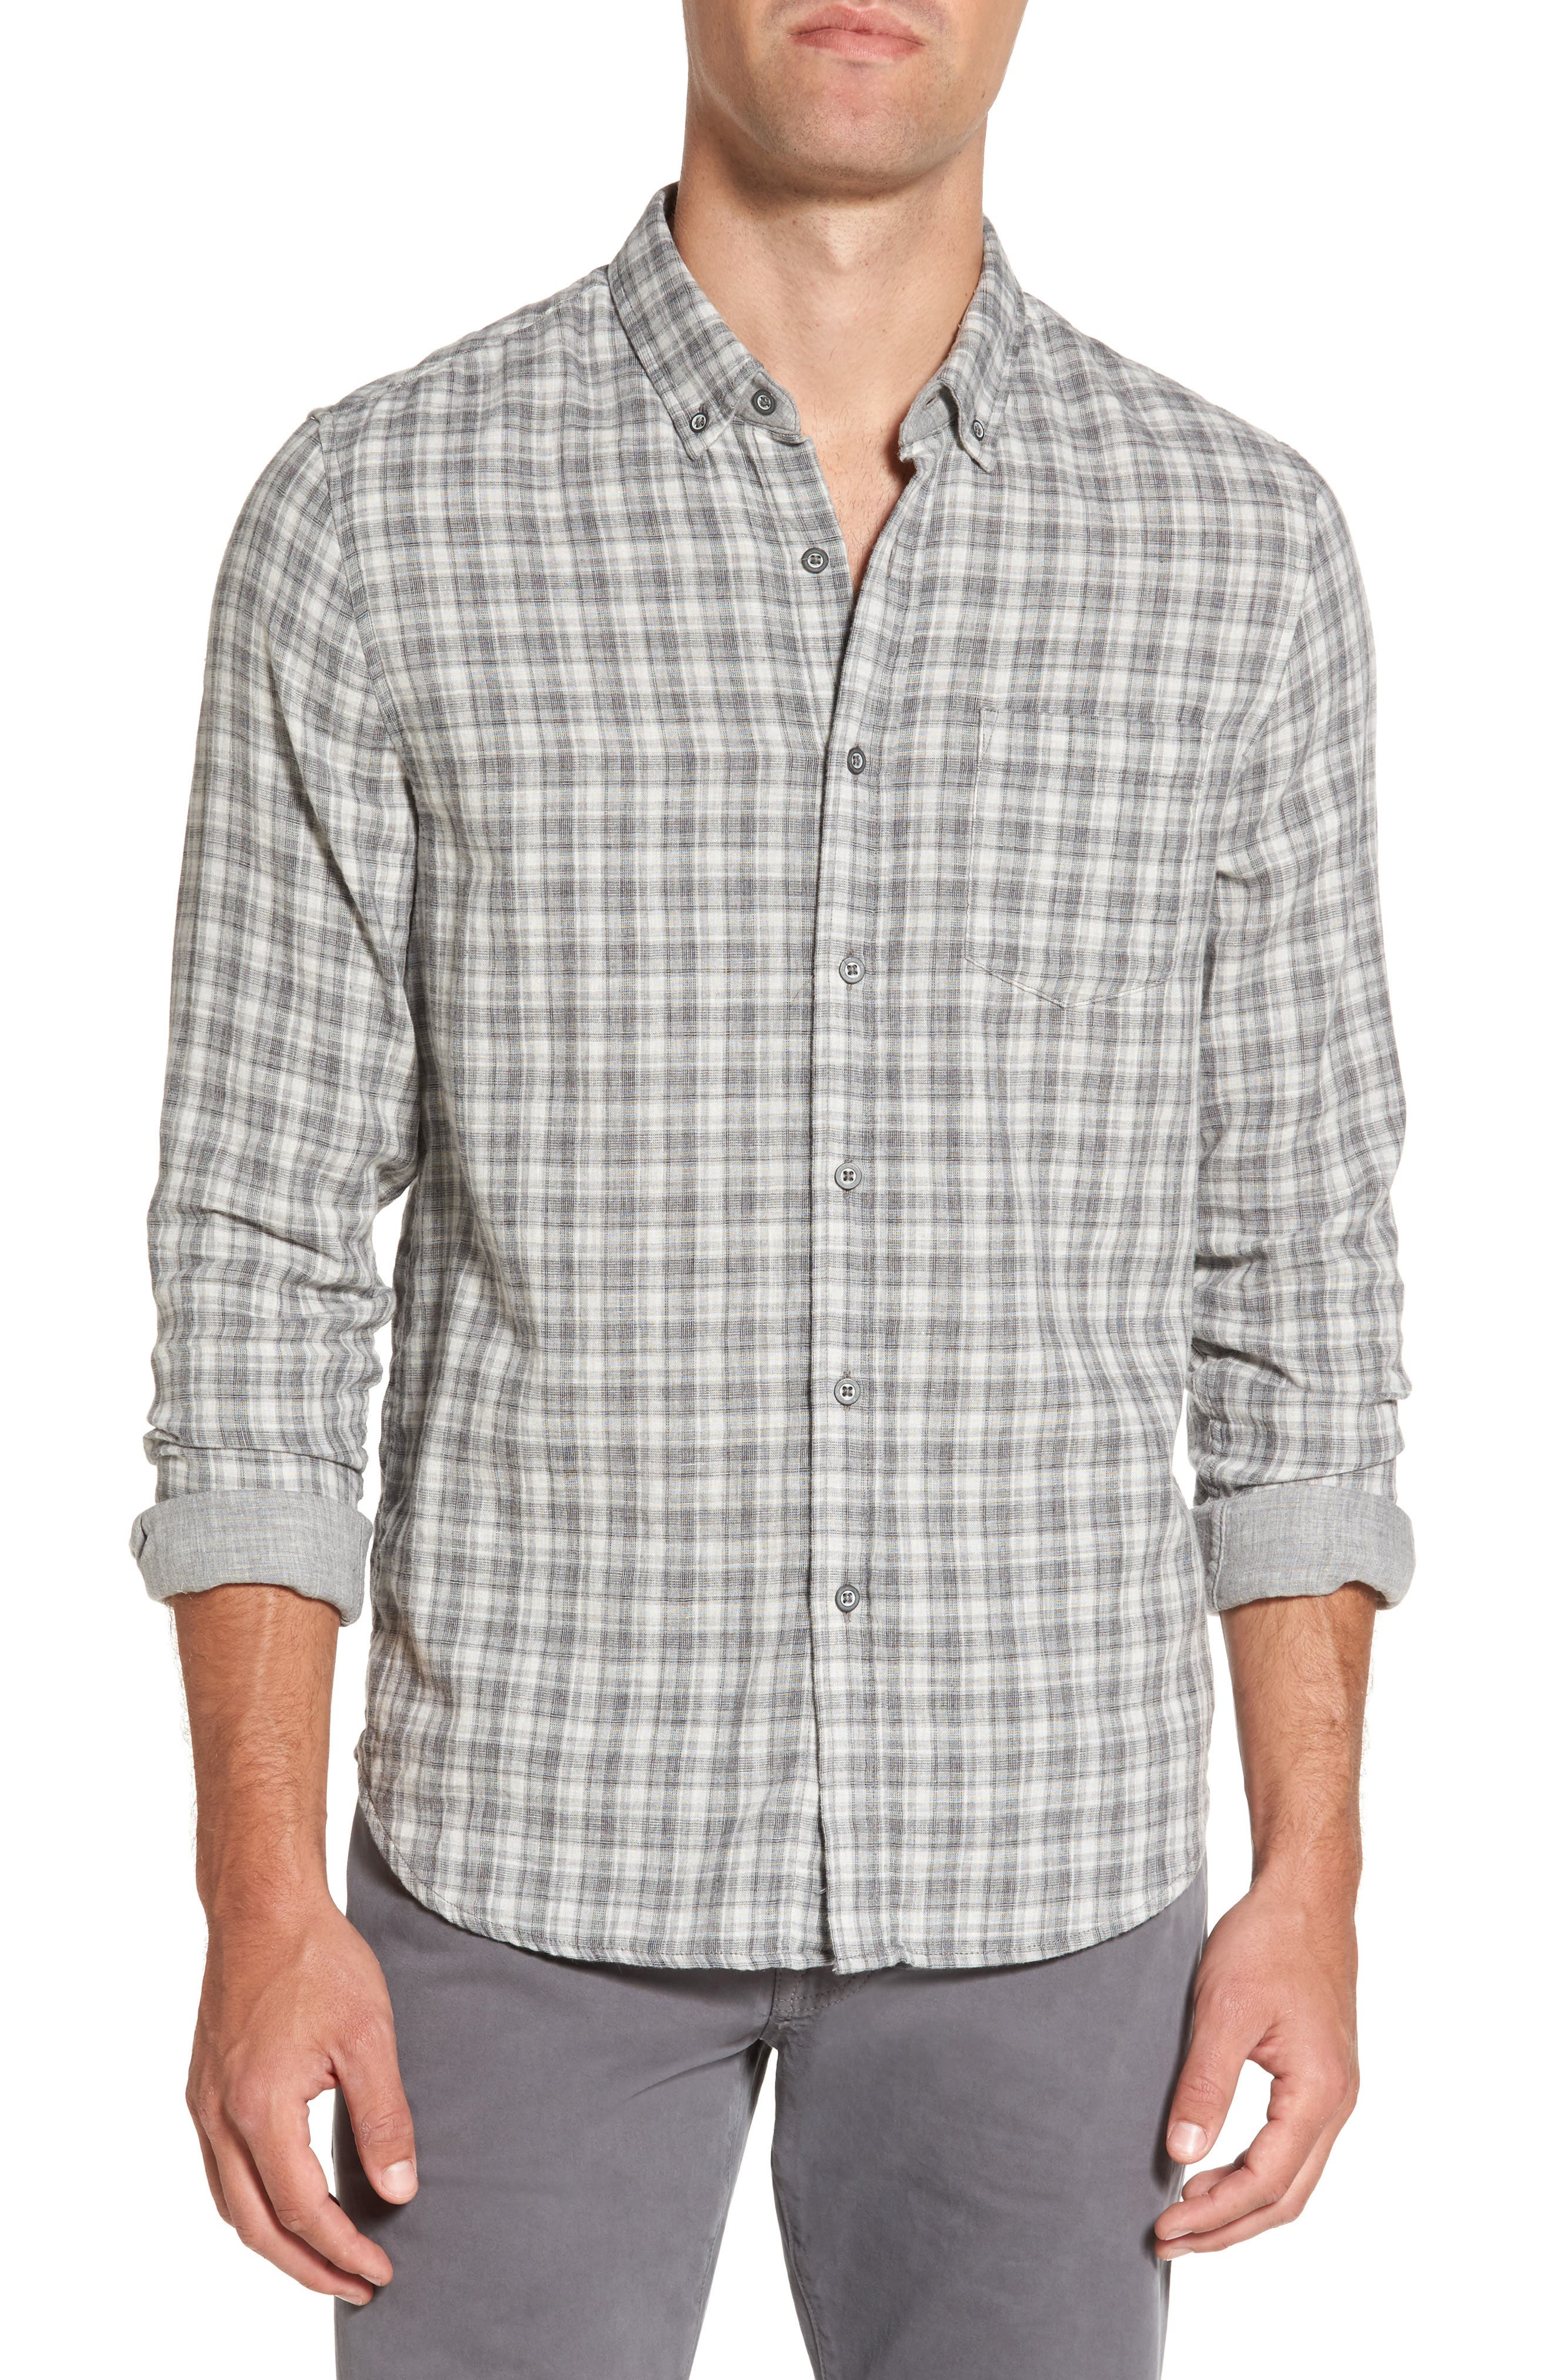 Grady Plaid Sport Shirt,                         Main,                         color, Dlp Heather Grey/ White